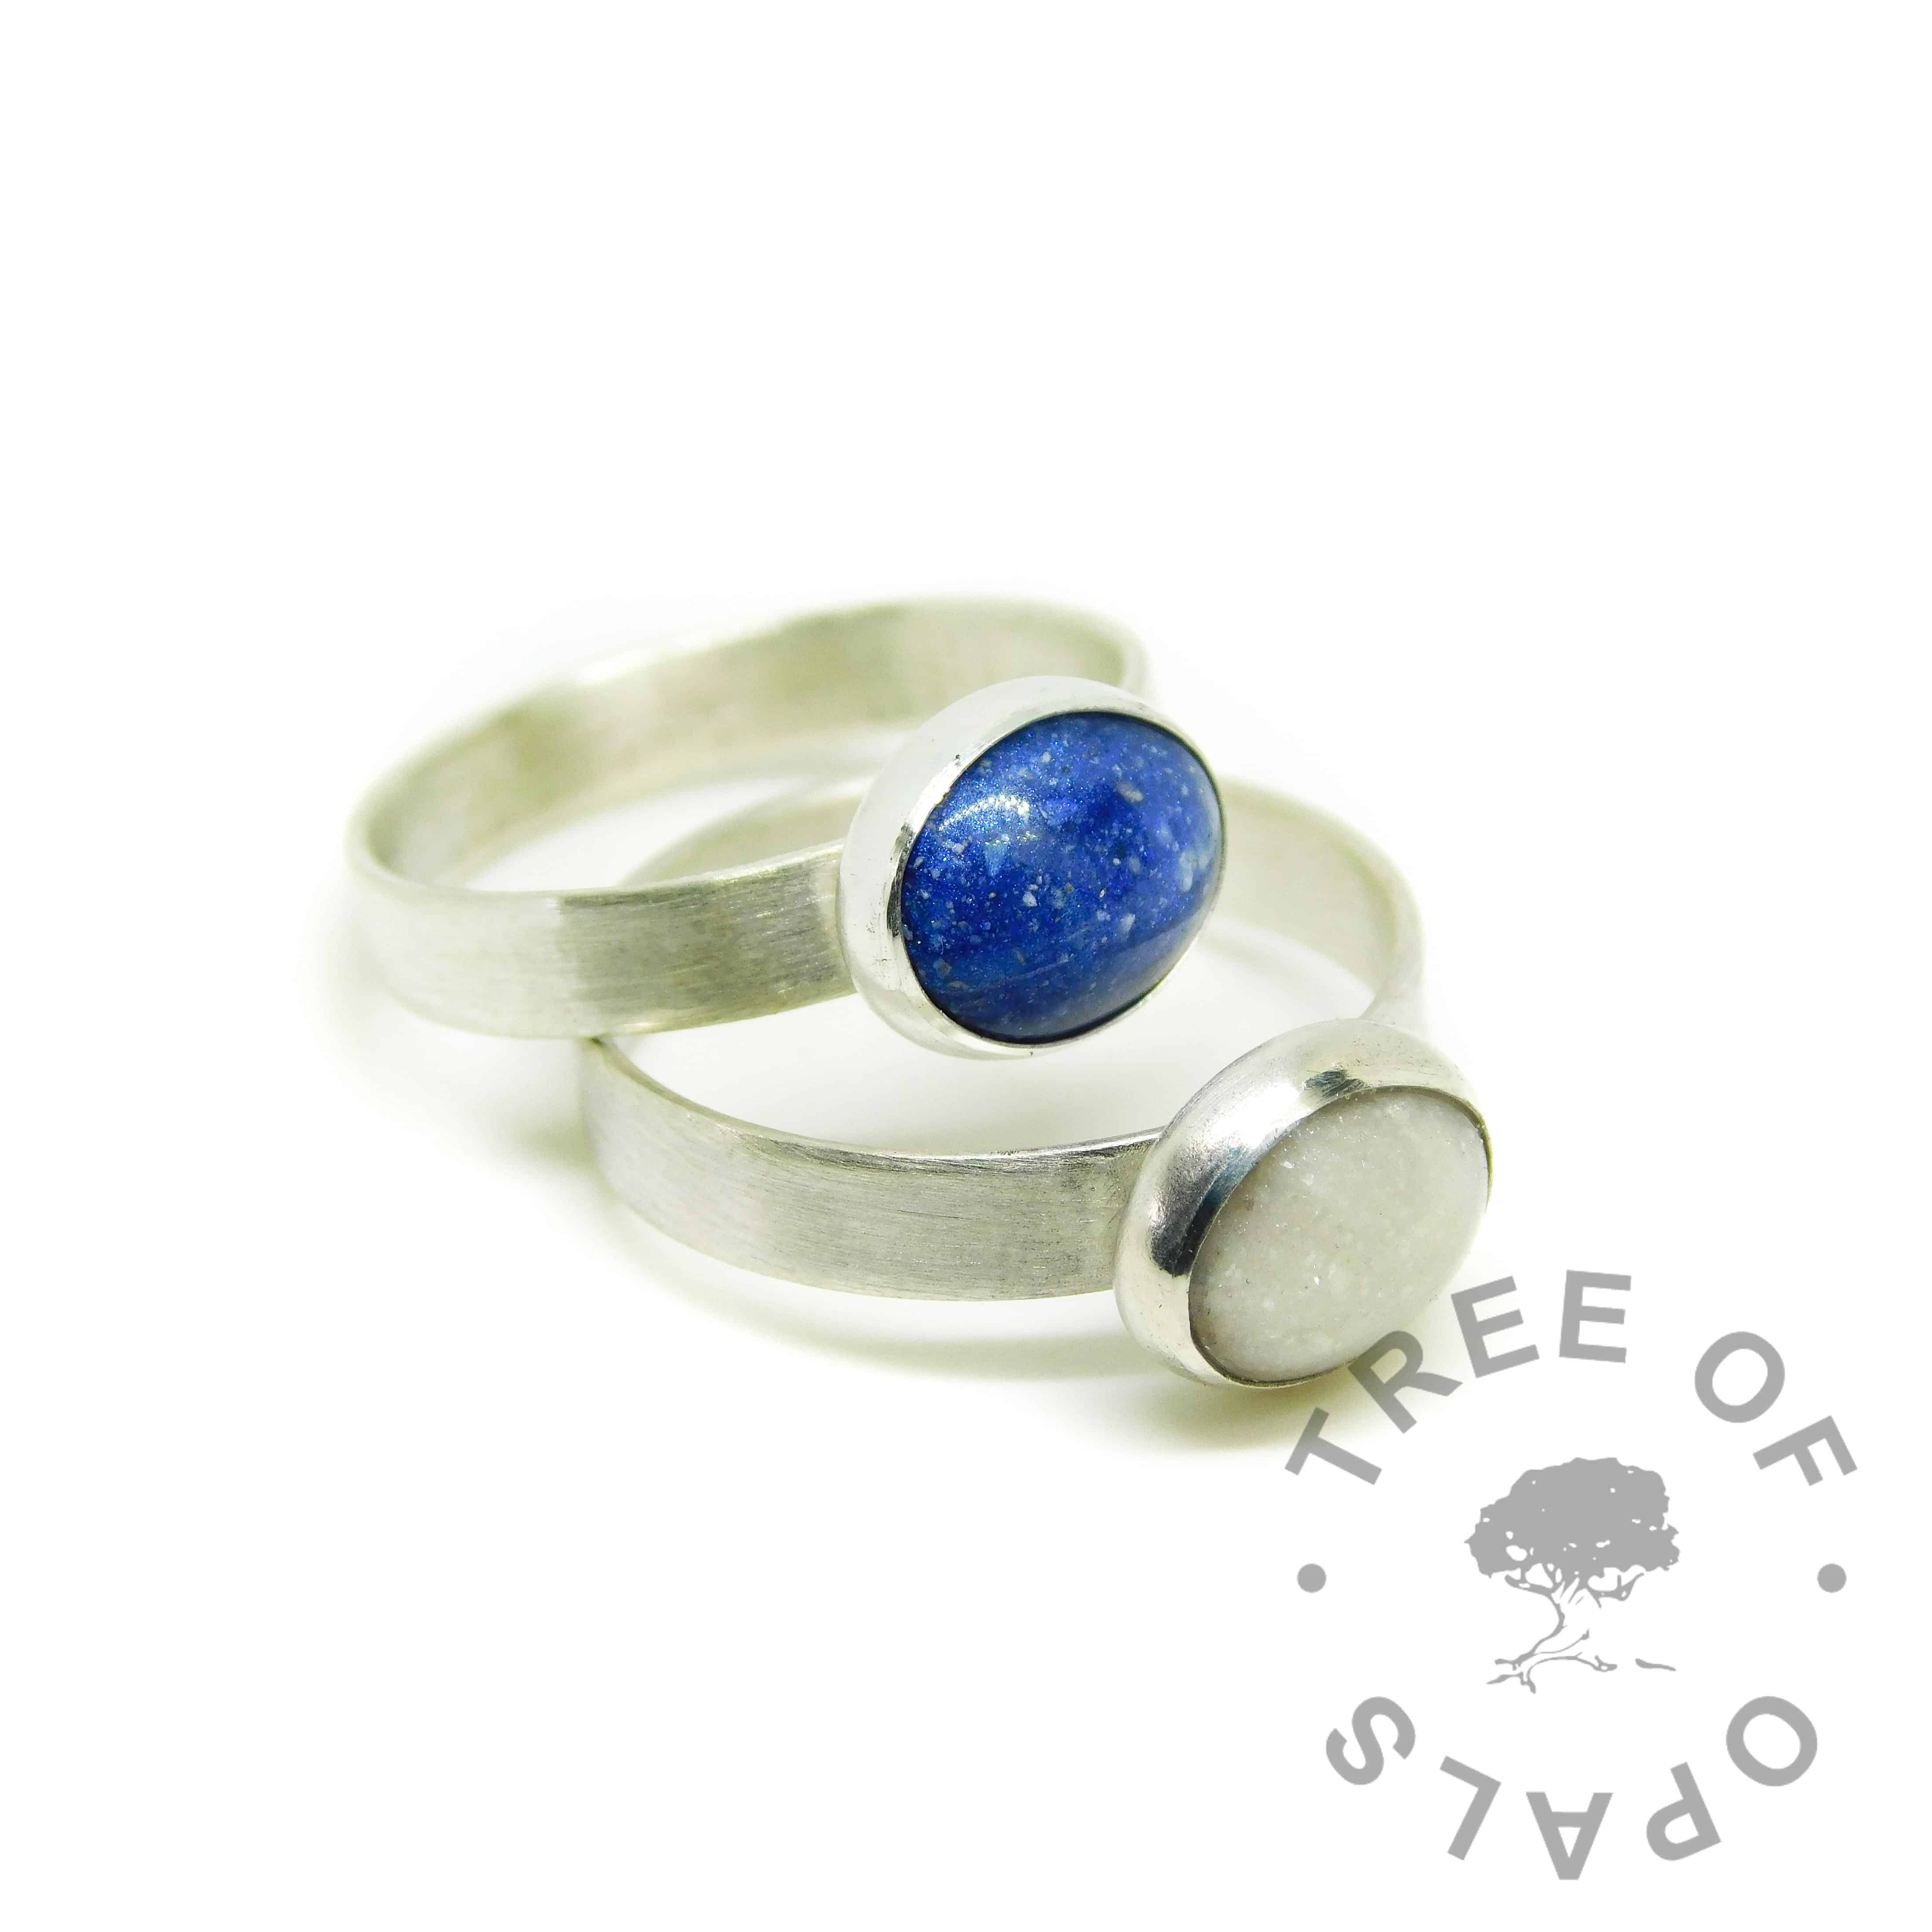 Cremation ash rings with Aegean blue and unicorn white resin sparkle mixes. Brushed band ring solid sterling EcoSilver